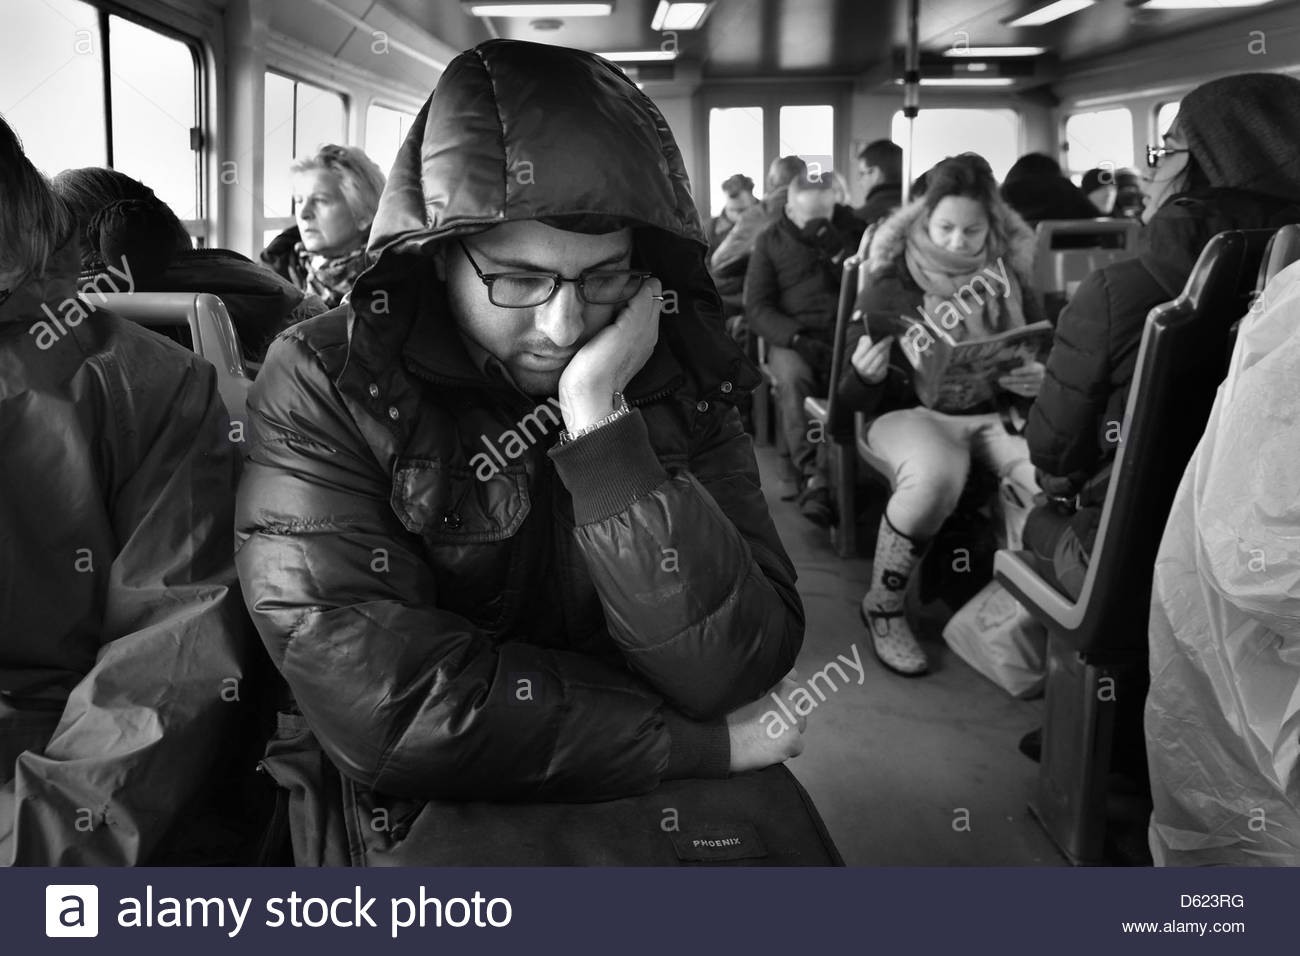 Passengers on a Vaporetto, Venice, Italy. A man, heavily wrapped against the cold, snoozes in his seat on his way - Stock Image